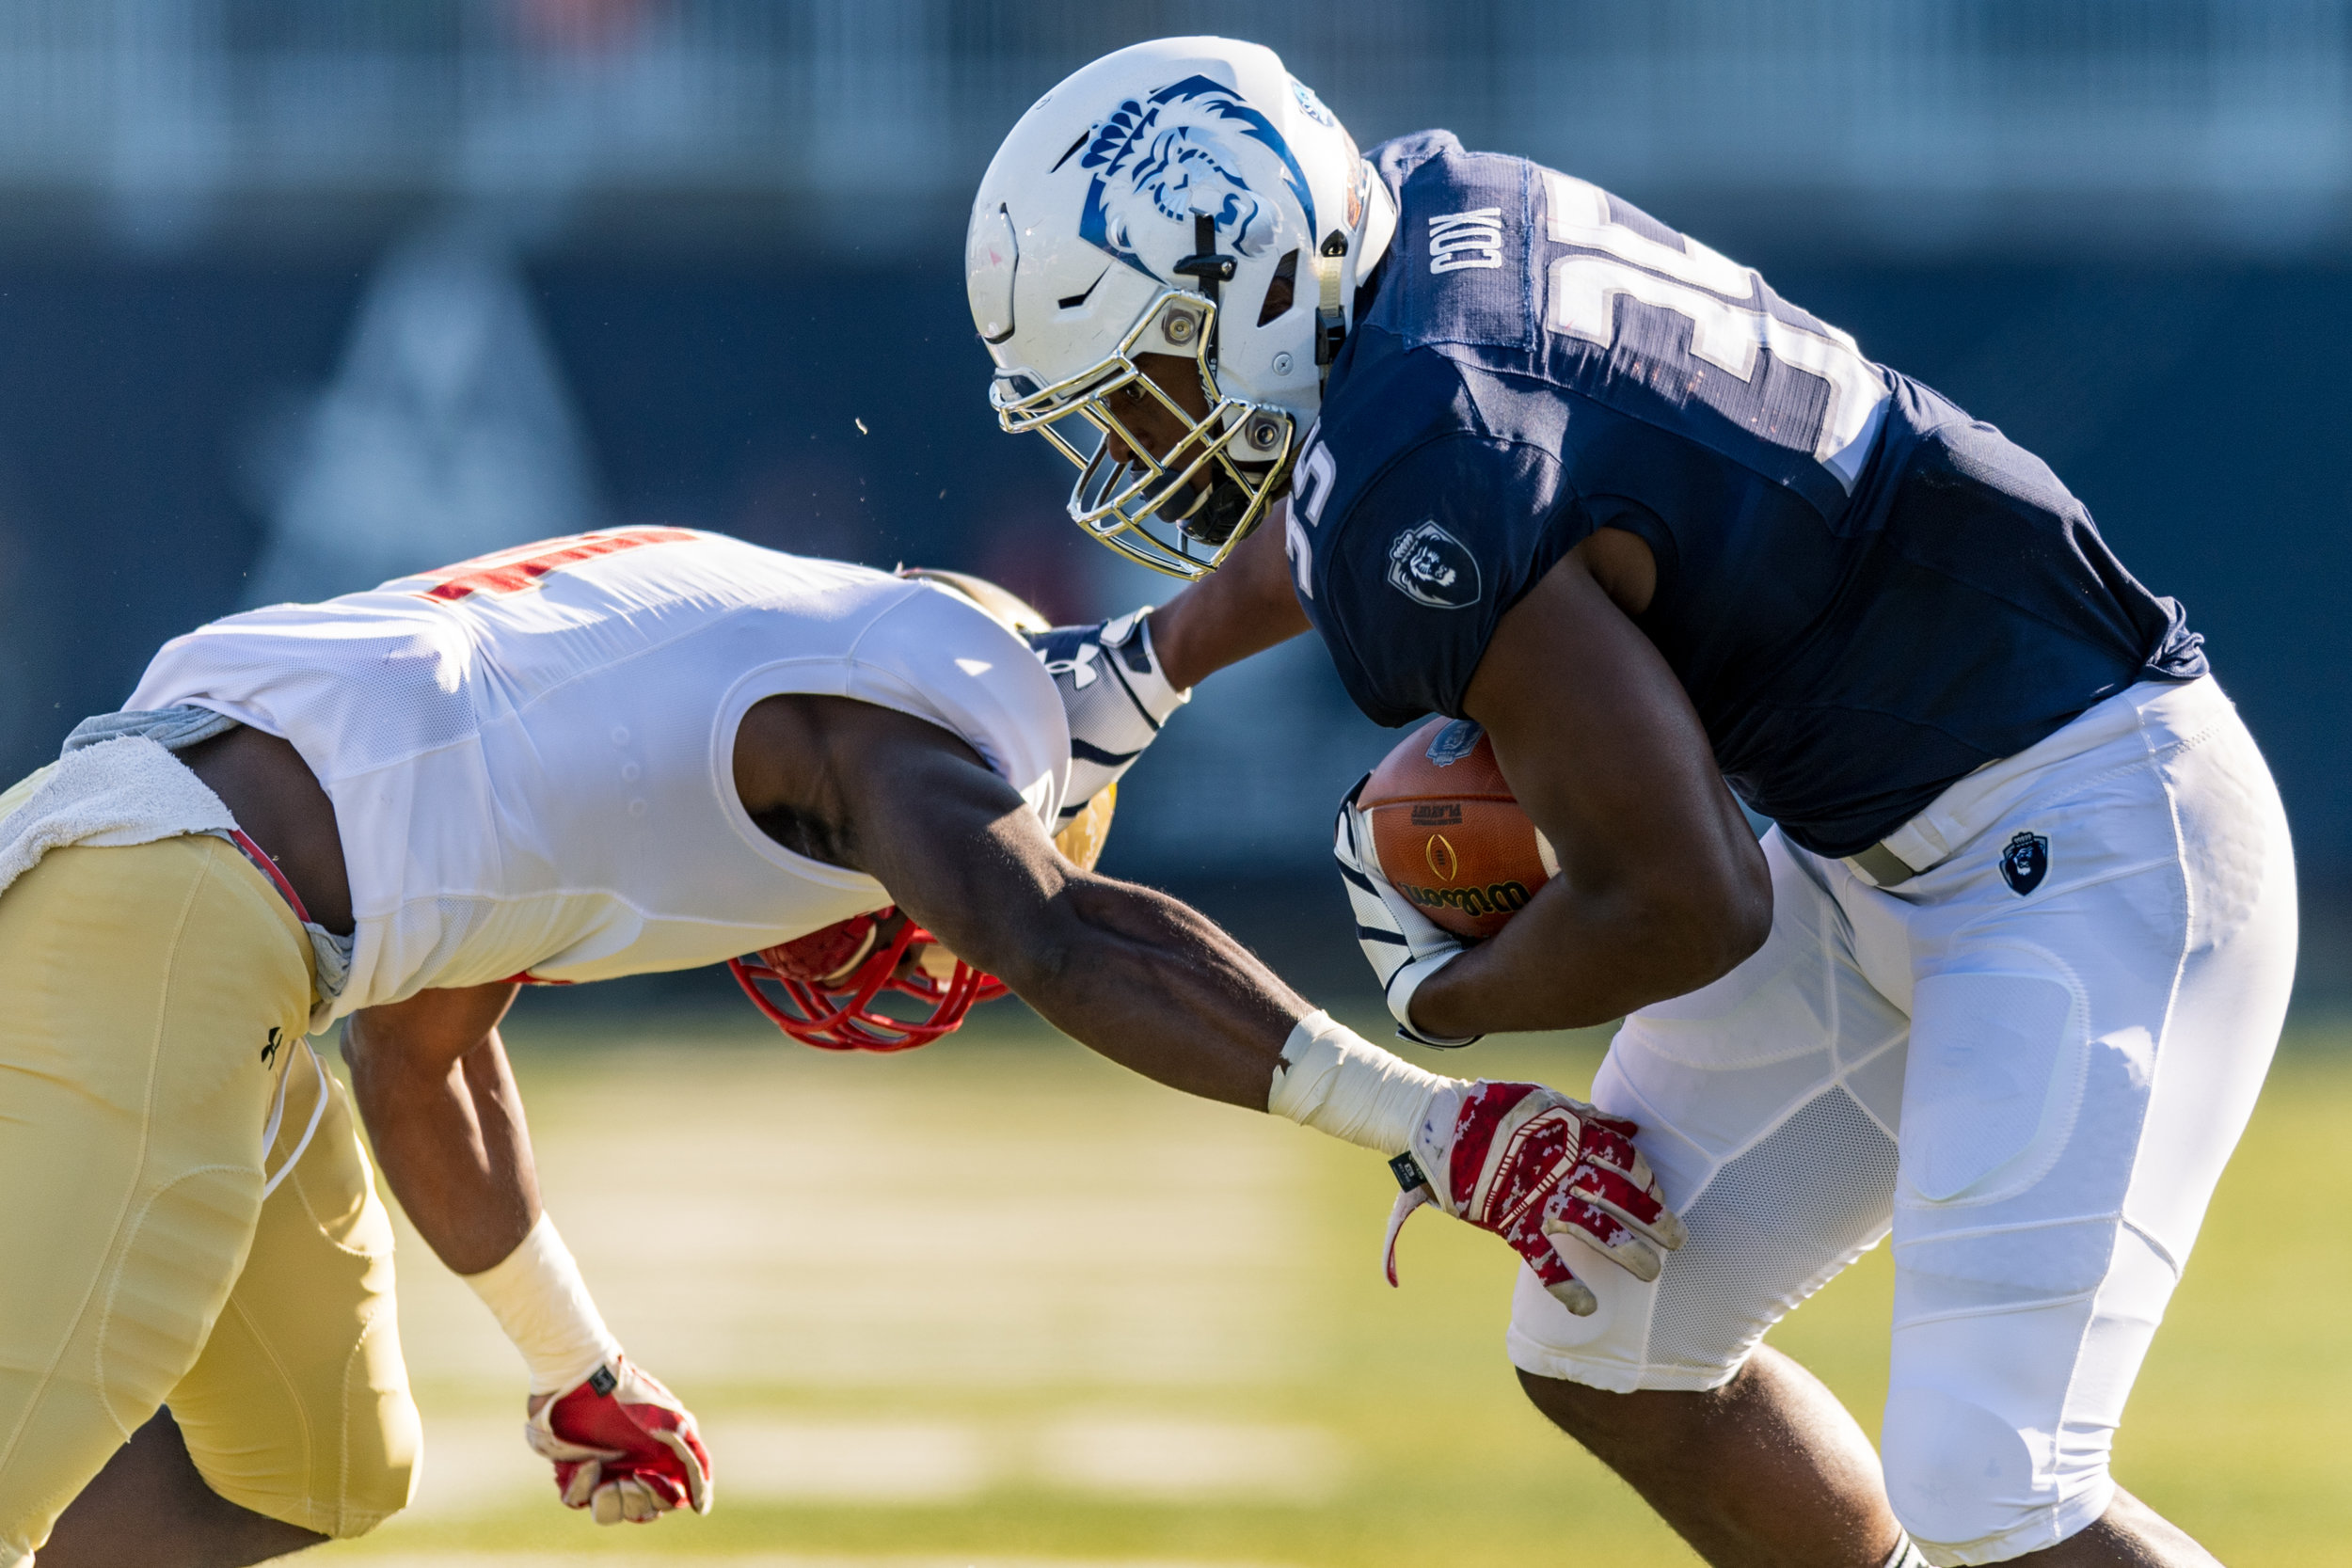 Old Dominion Monarchs running back Jeremy Cox (35) slips by Virginia Military Institute Keydets defensive back Uzoma Kpaduwa (4) during the Saturday, Nov. 17, 2018 game held at Old Dominion University in Norfolk, Virginia. Old Dominion leads VMI 49 to 0 at halftime.